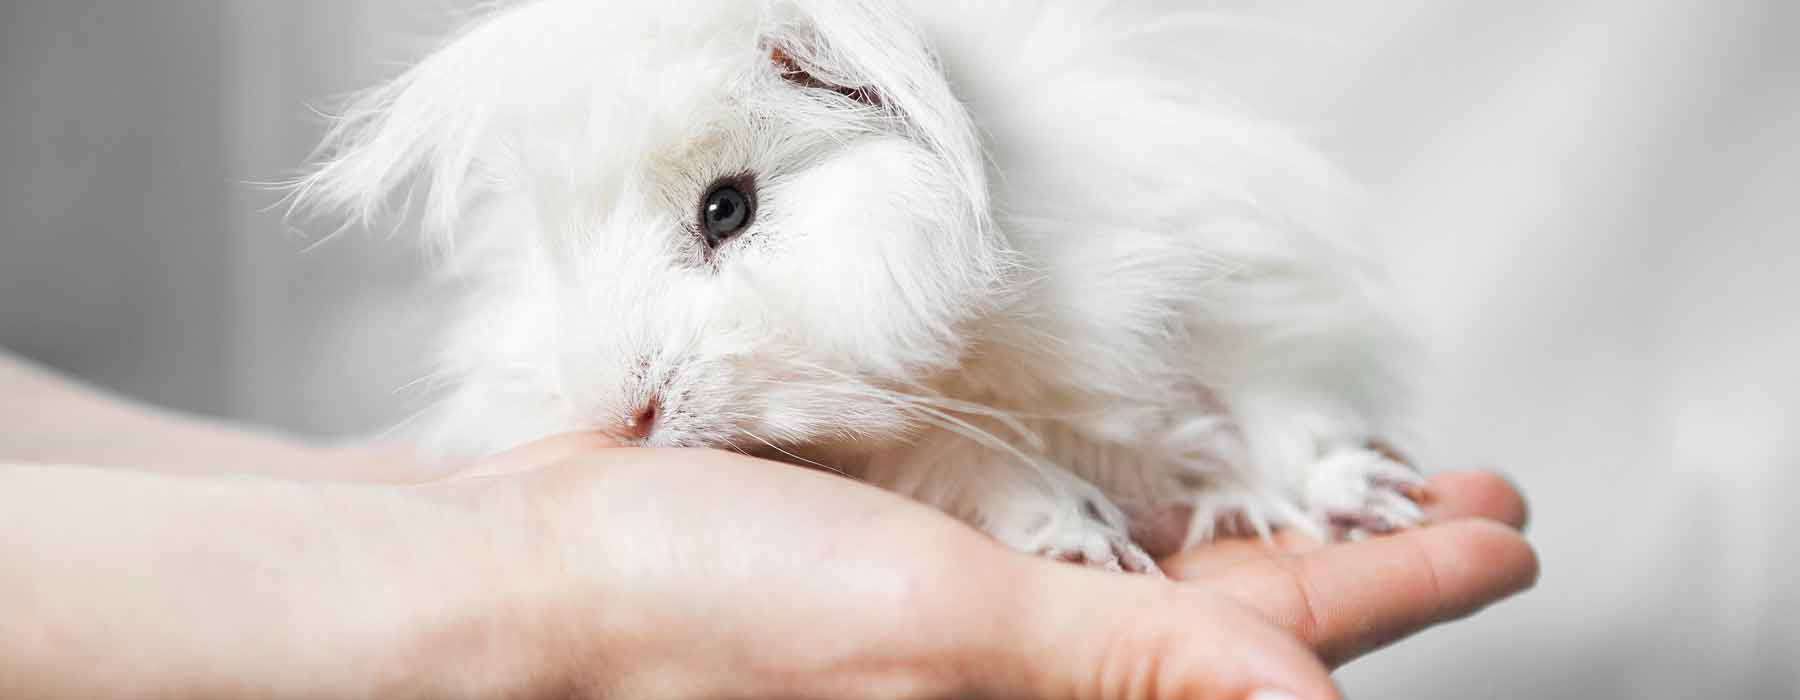 pure white guinea pig on person's hand